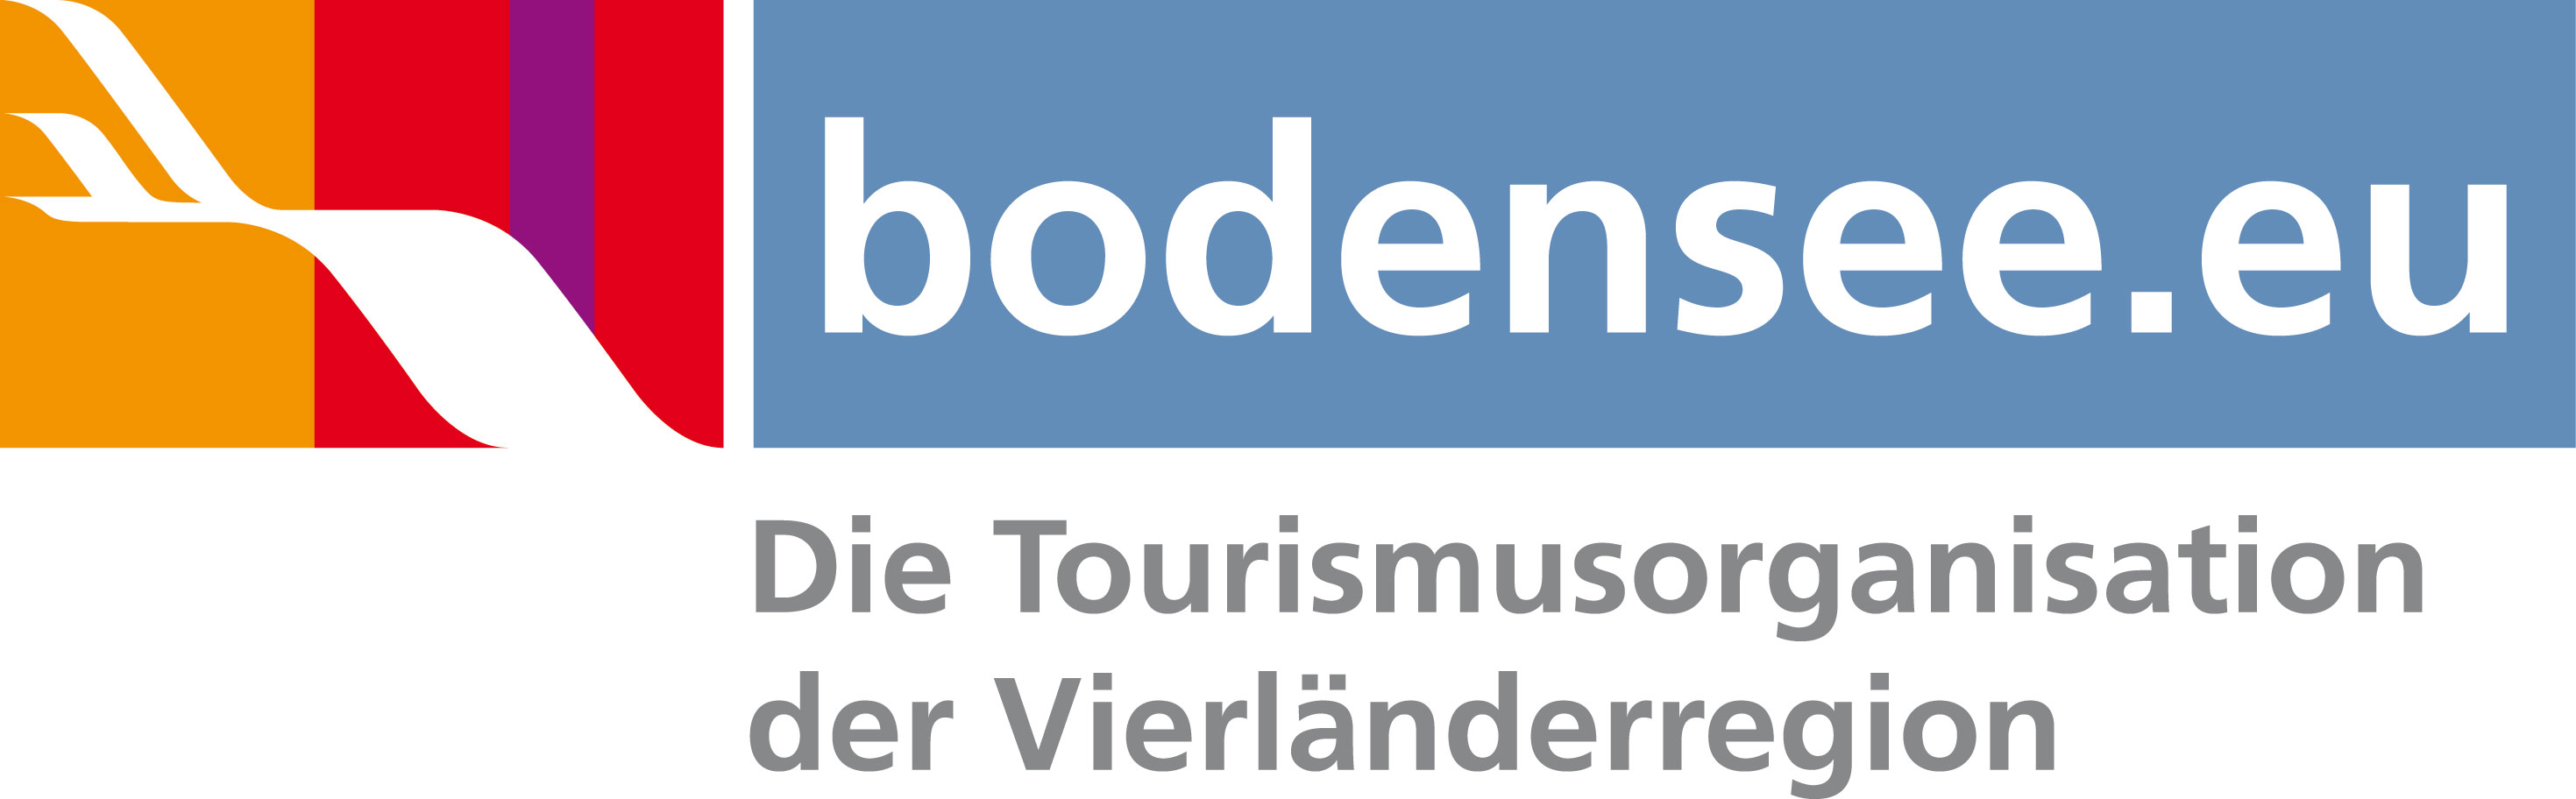 Internationaler Bodenseetourismus